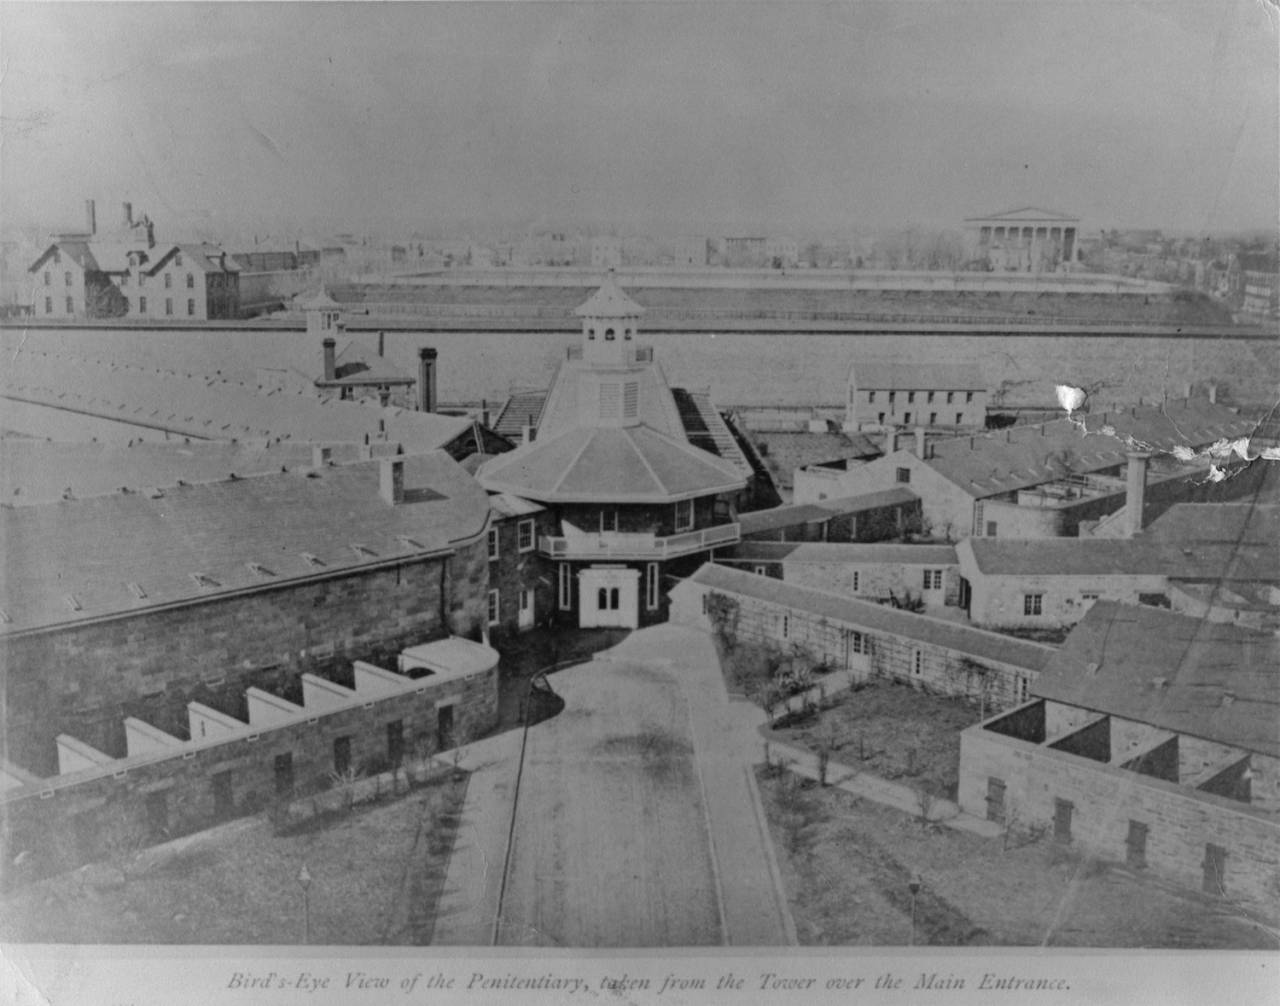 View from the Administration Building, c. 1870. Photo: collection of Eastern State Penitentiary Historic Site, gift of Jack Flynn.